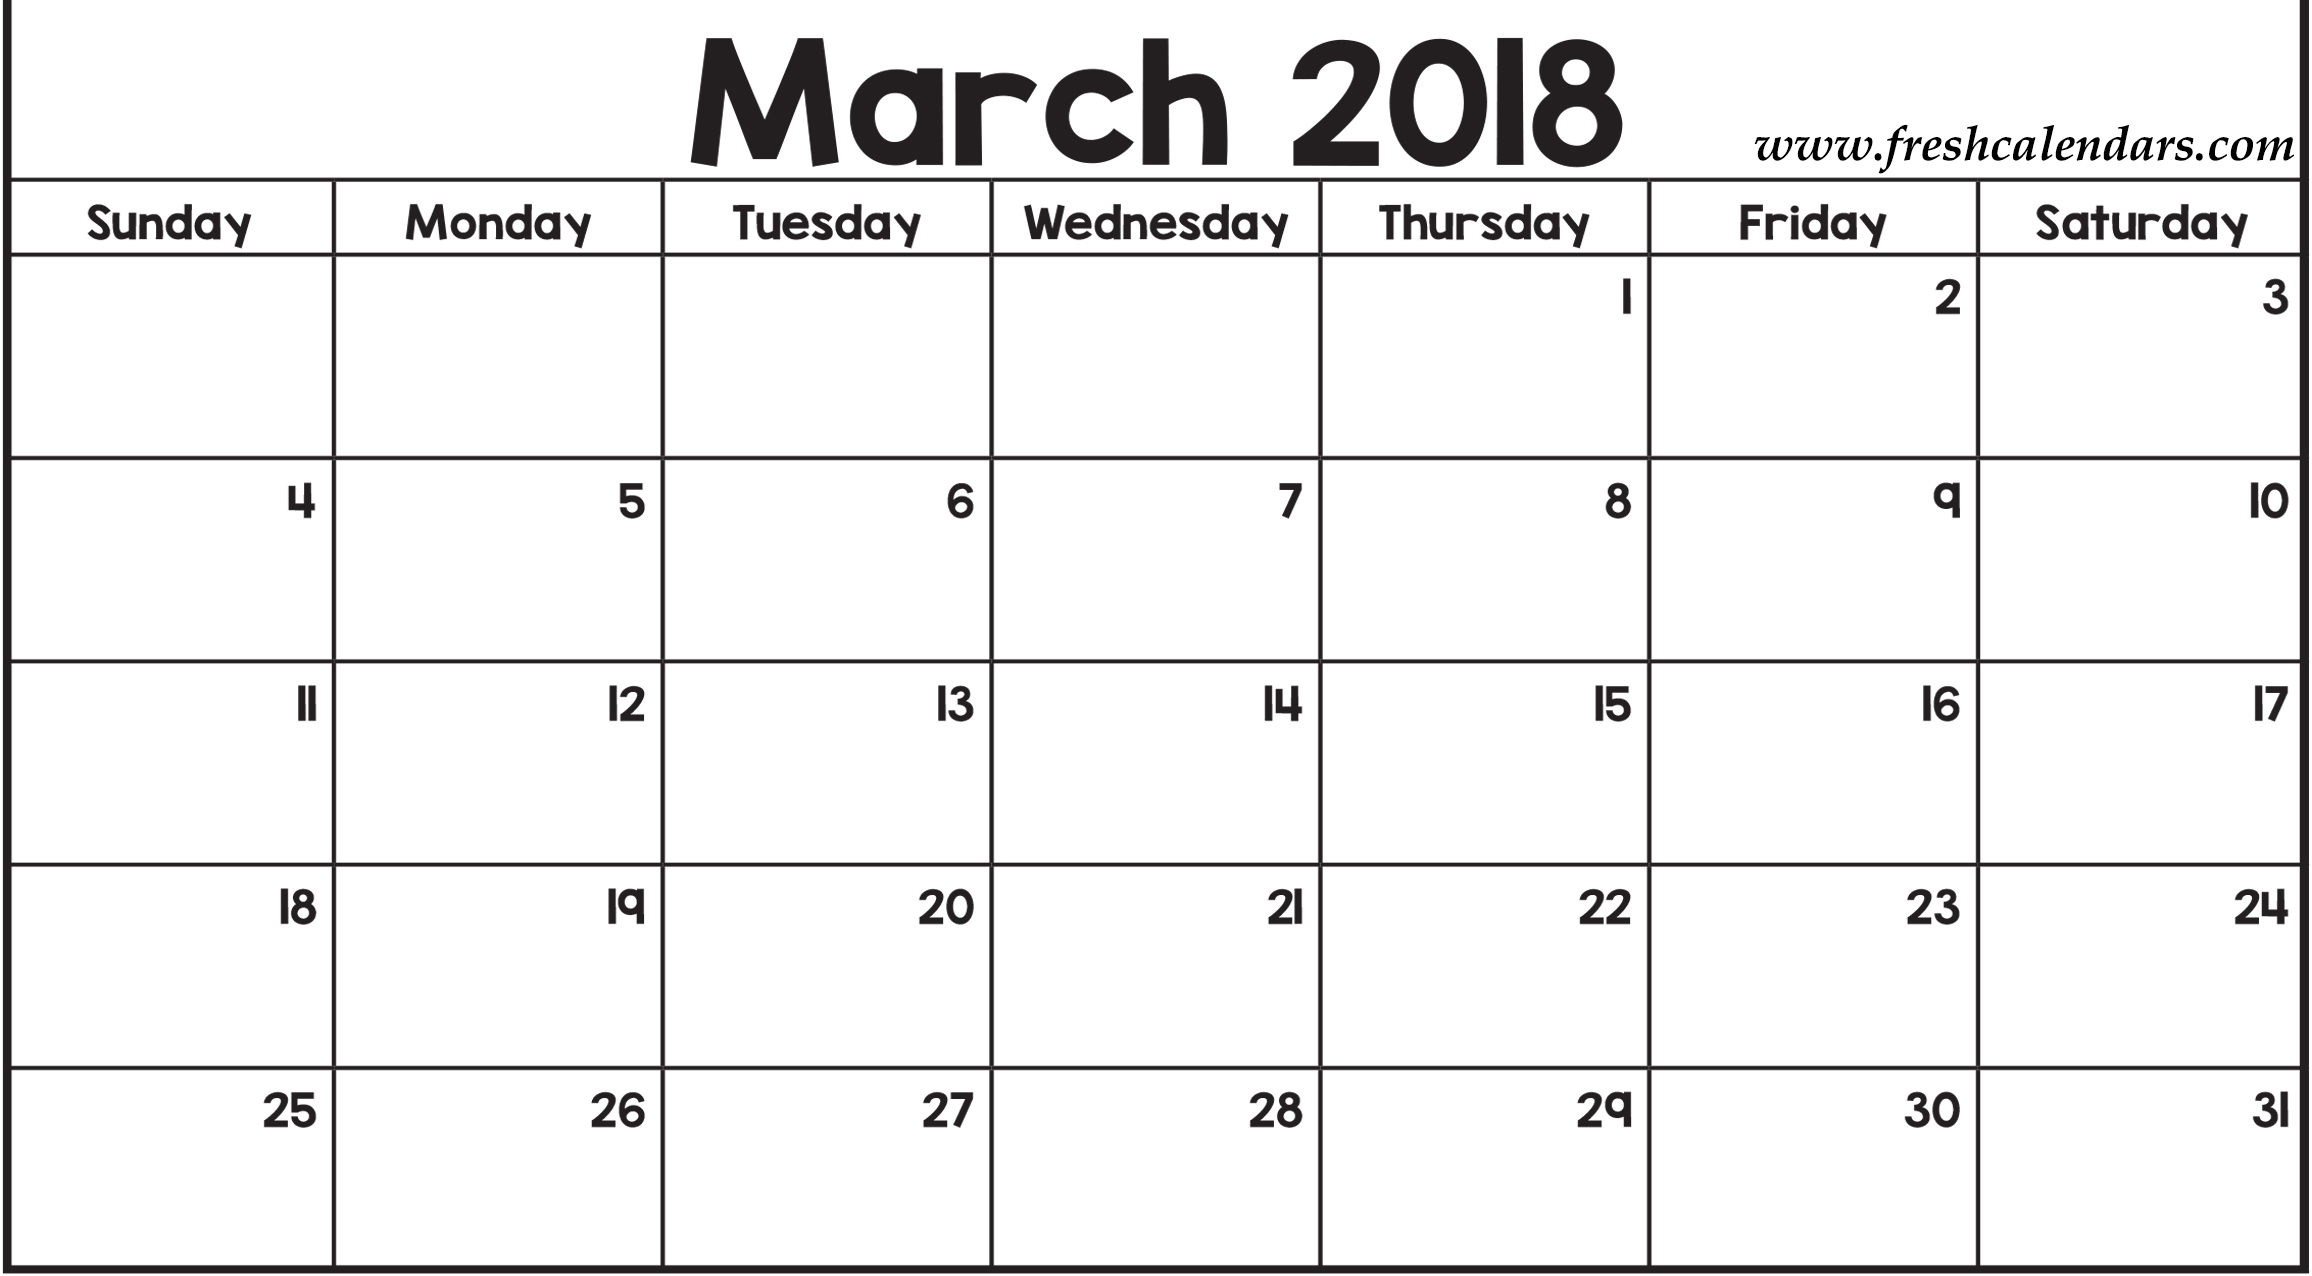 image relating to Calendar March Printable titled March 2018 Calendar Printable - New Calendars